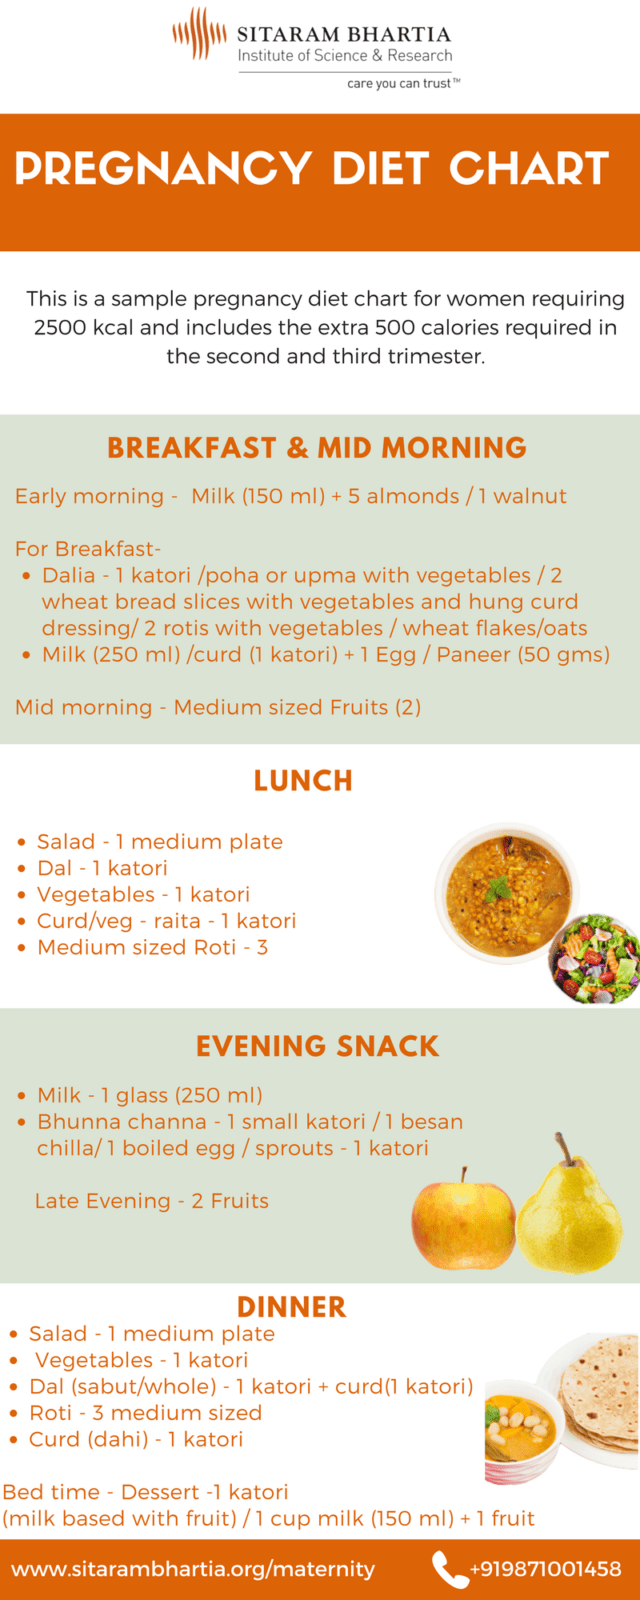 Pregnancy Diet Chart underweight women